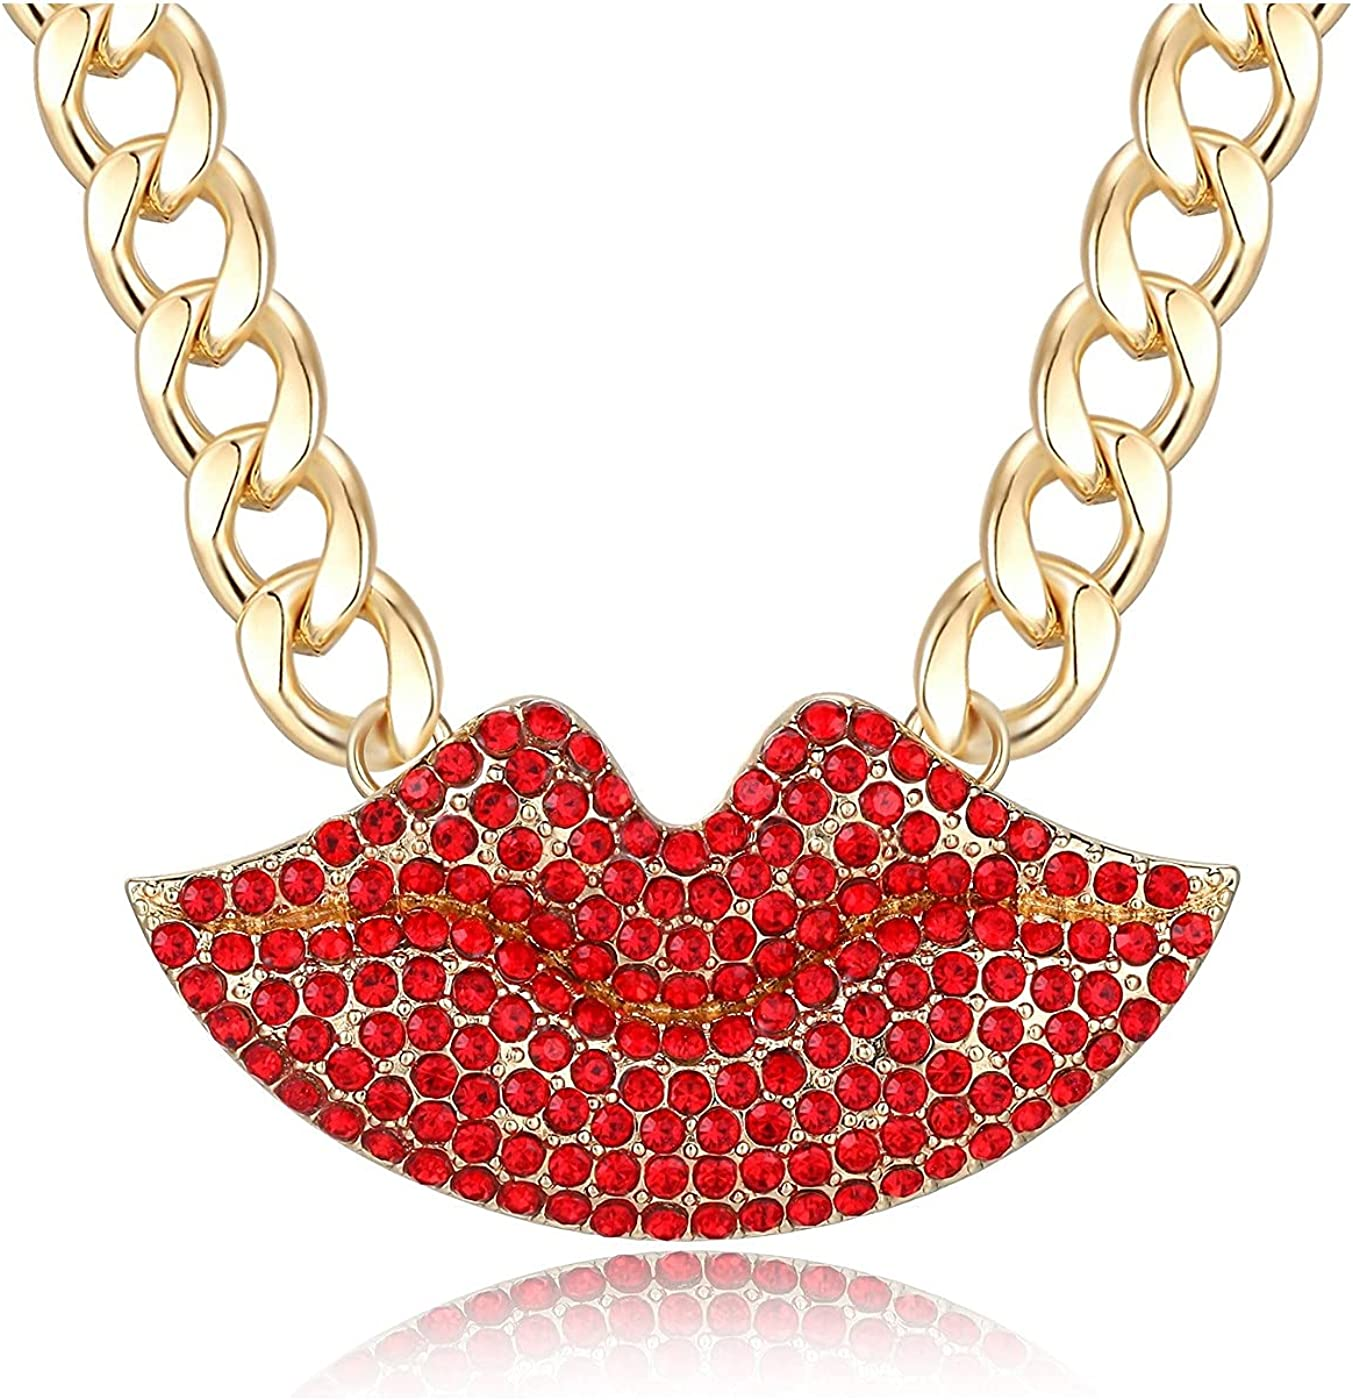 Women's Statement Crystal Lip Necklace Lovely Alloy Lip Costume Necklace Chunky Chain Choker Necklace Lip Shape Cocktail Jewelry